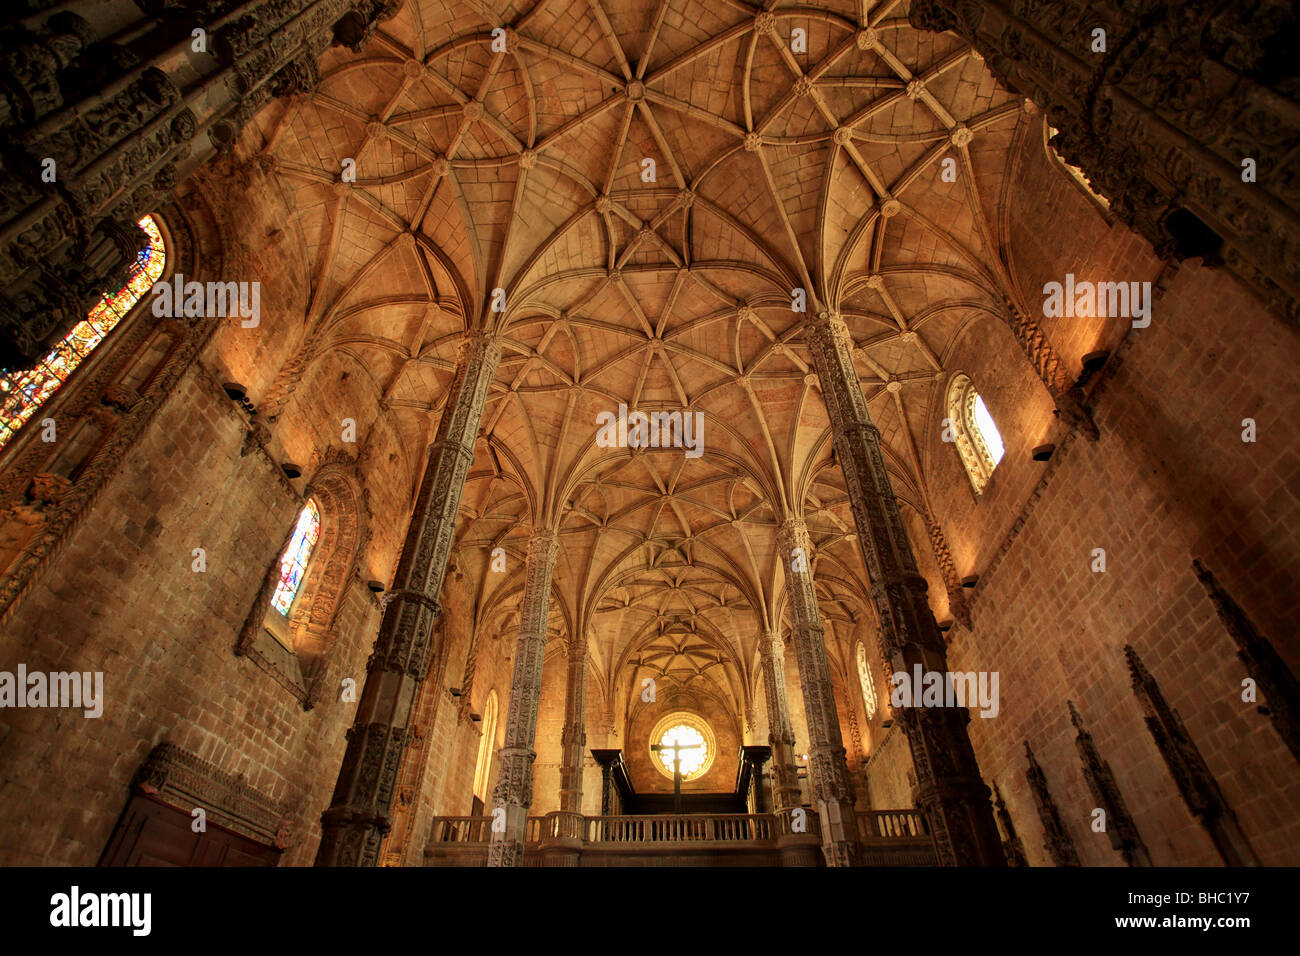 The interior of the monastery of Jeronimos dated between the 15th and 16th century is a UNESCO patrimony building - Stock Image